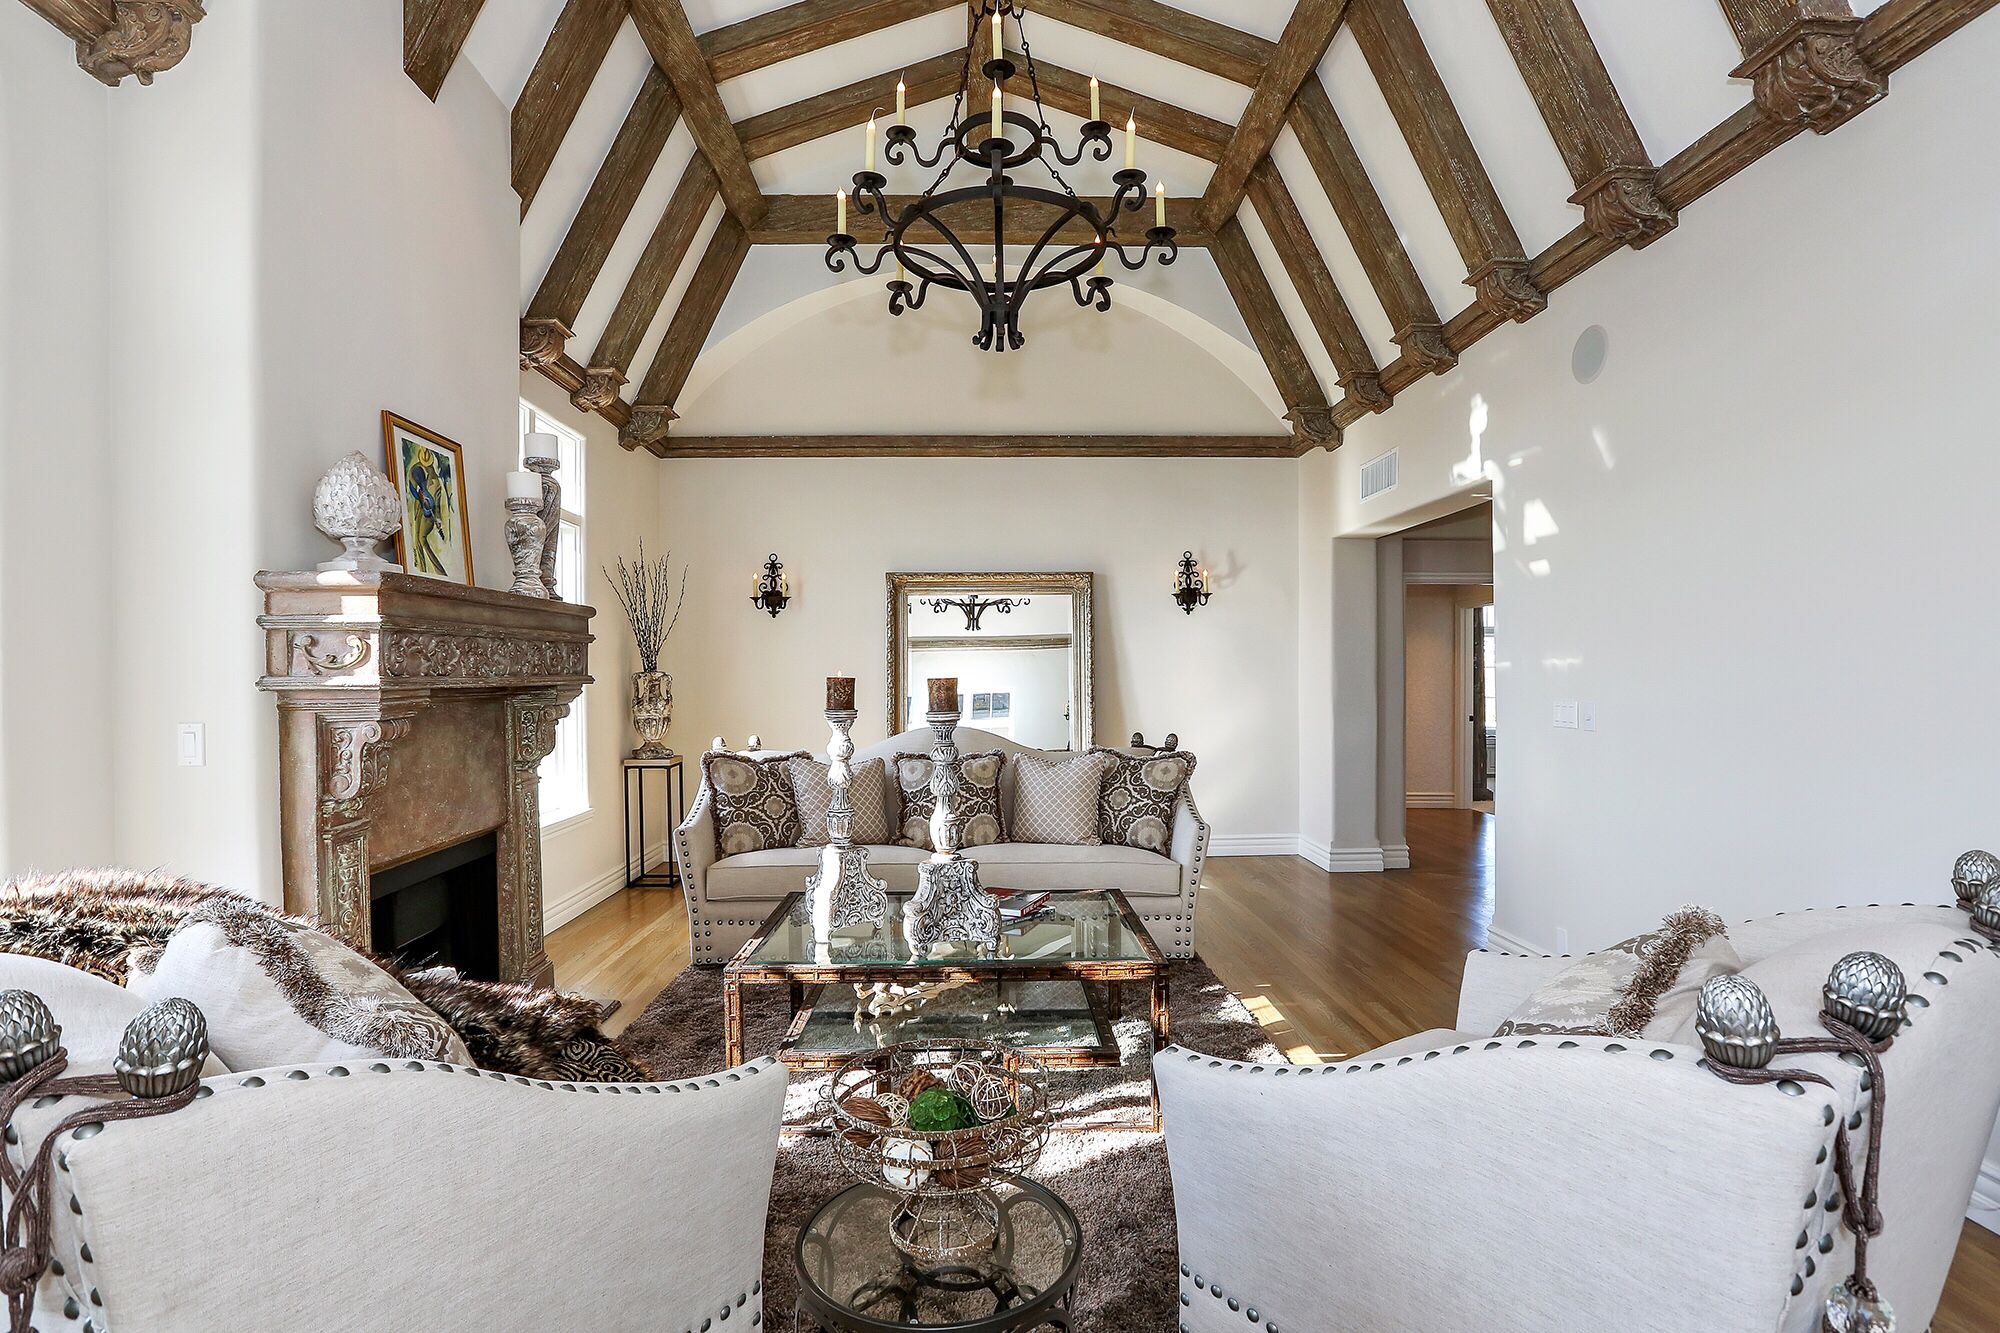 Gorgeous White Formal Living Room With A Vaulted Post And Beam Ceiling Featuring Hand Fo Rustic Living Room Design Rustic Living Room Wrought Iron Chandeliers #rustic #living #room #chandelier